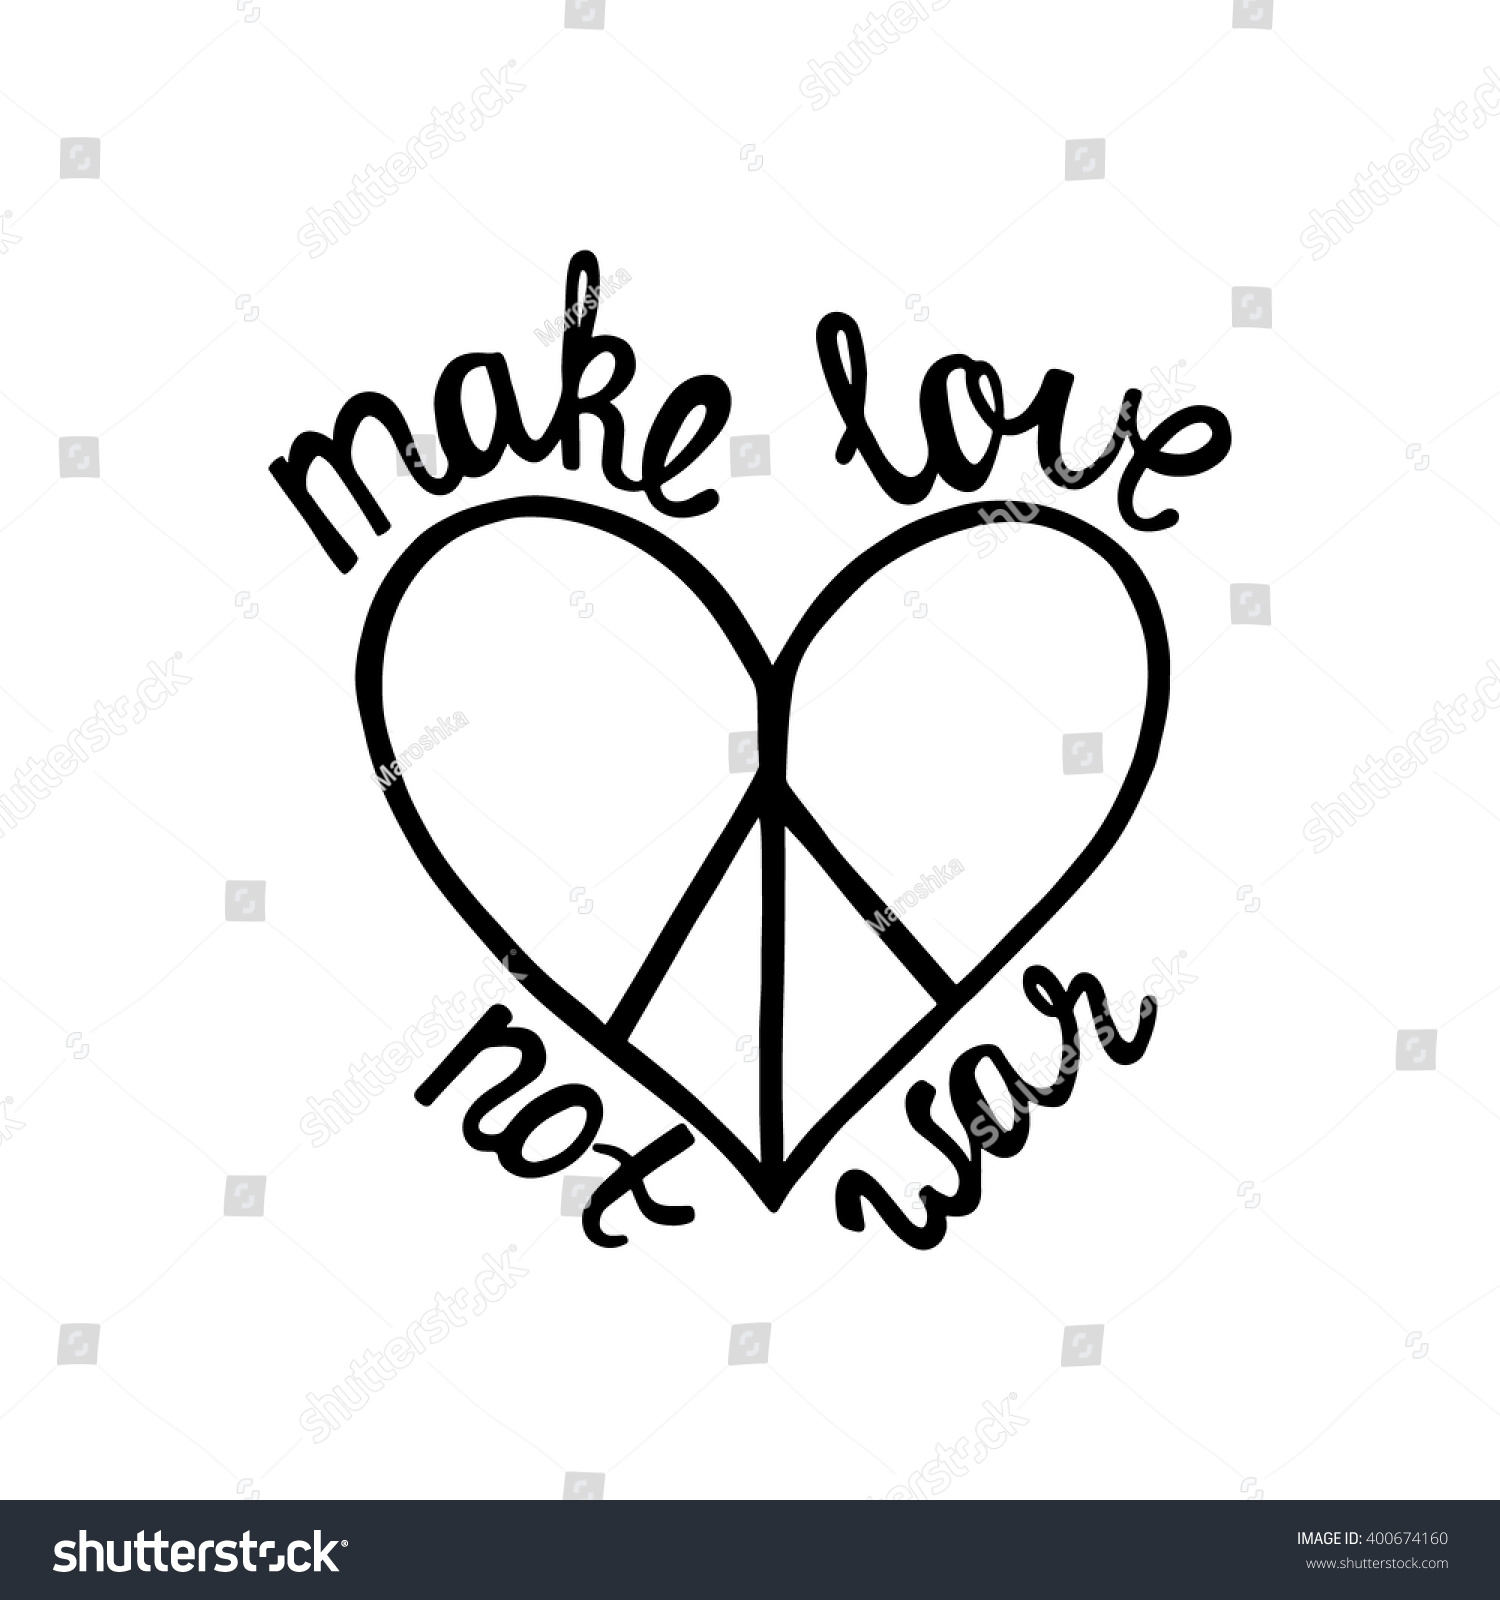 Quotes On Peace And Love Make Love Not War Inspirational Quote Stock Vector 400674160